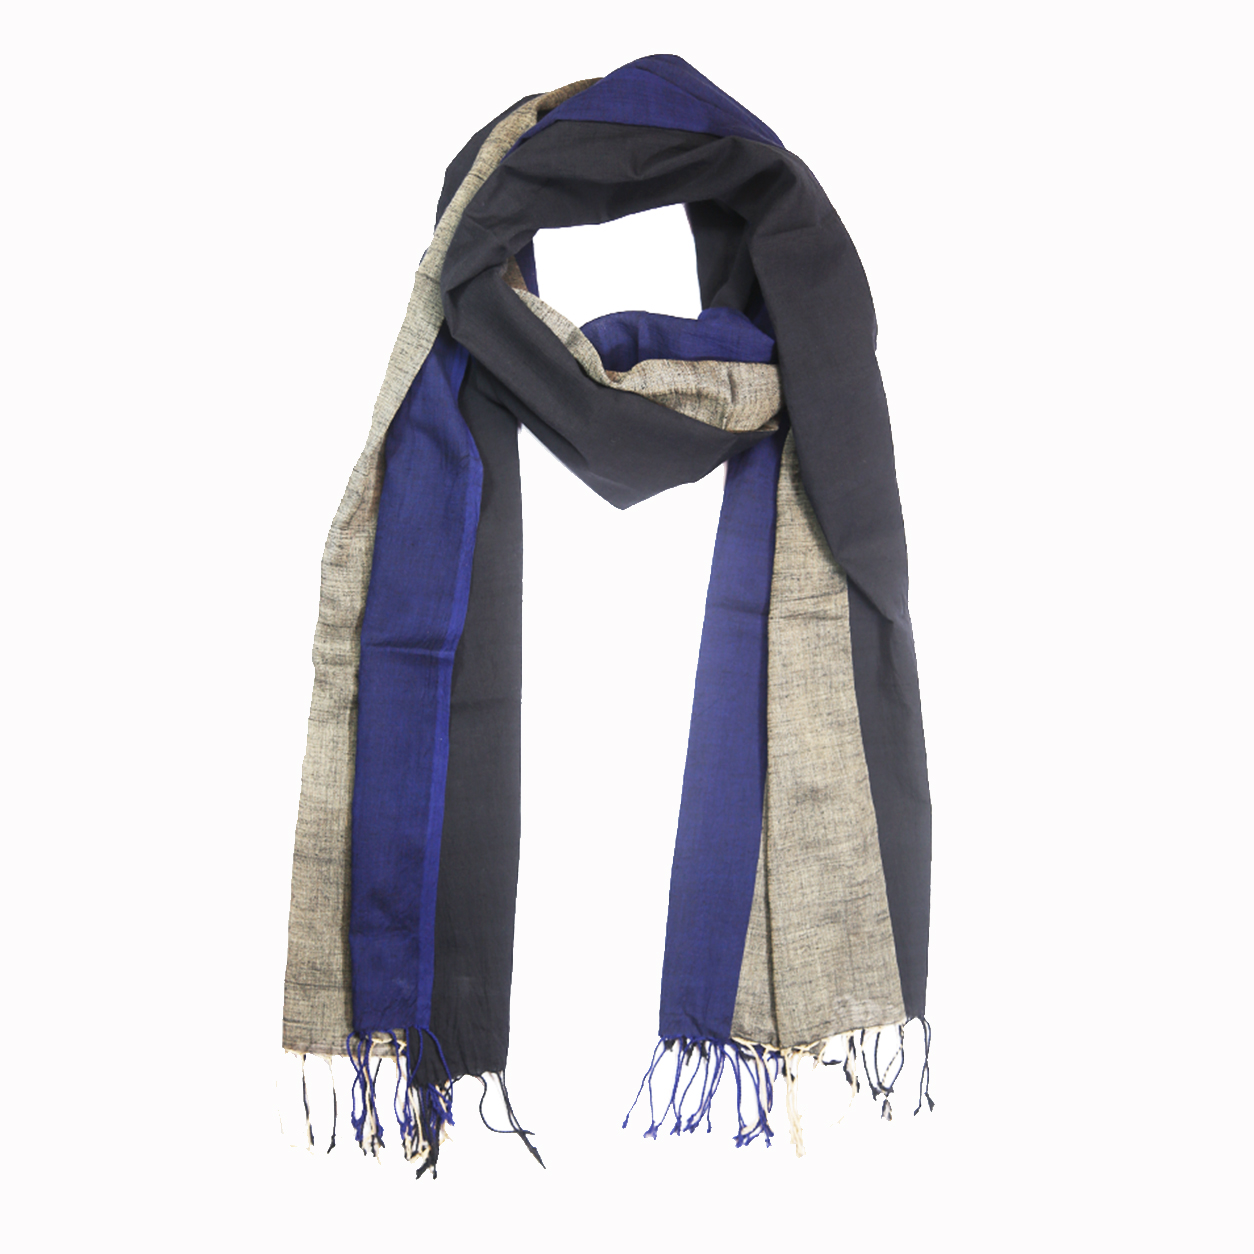 Hand Loom Woven Panels Cotton Scarf - Blue and Black